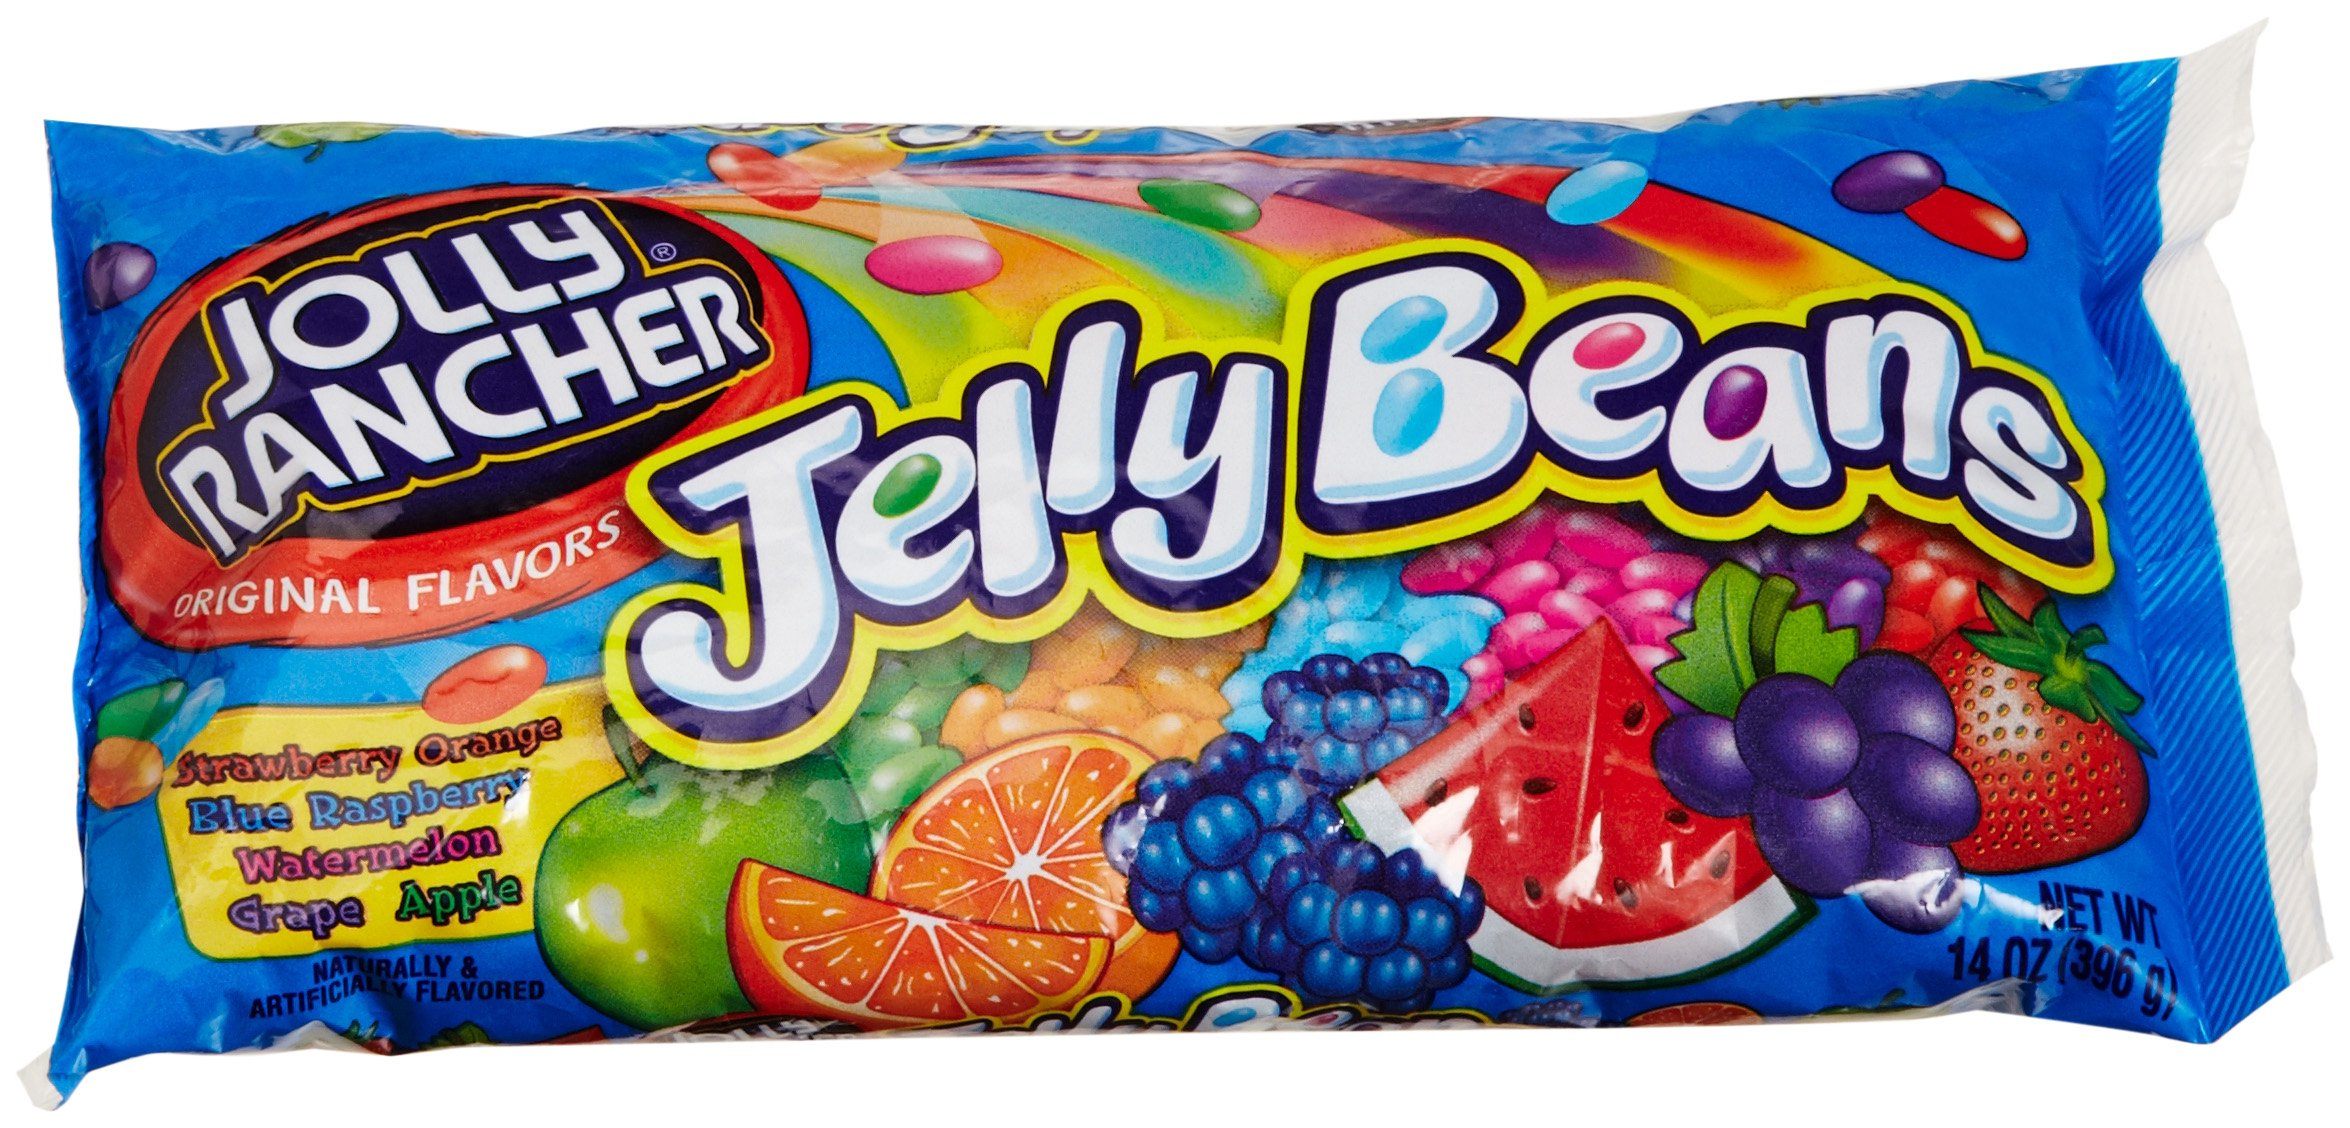 JOLLY RANCHER Jelly Bean Candy, Original, 14 Ounce (Pack of 12) by Jolly Rancher (Image #2)